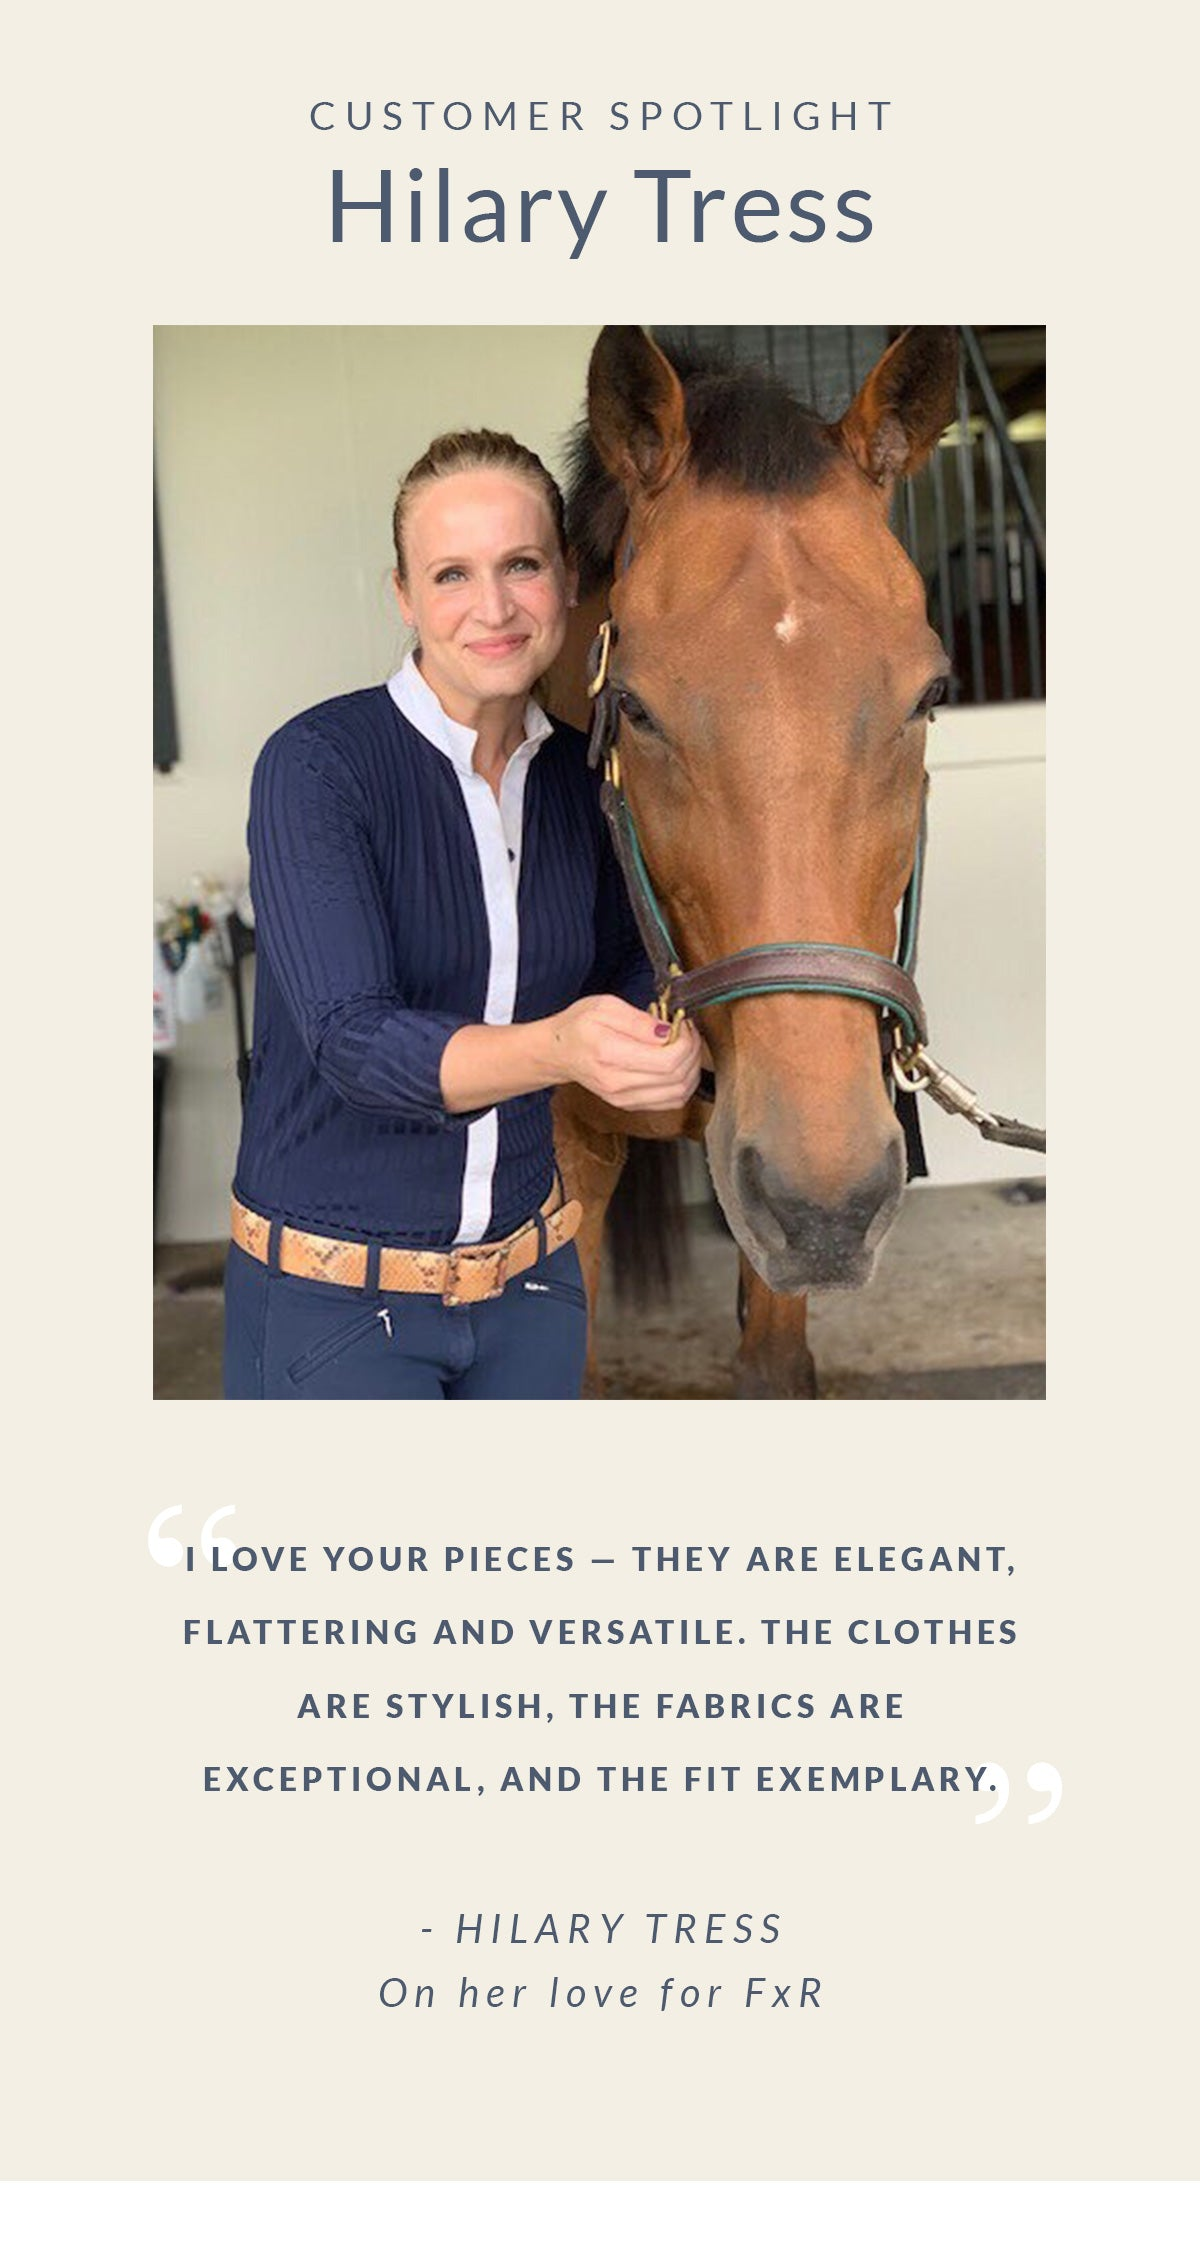 "Customer Spotlight: Hillary Tress. ""I love your pieces - they are elegant, flattering and versatile. The clothes are stylish, the fabrics are exceptional, and the fit exemplary."""